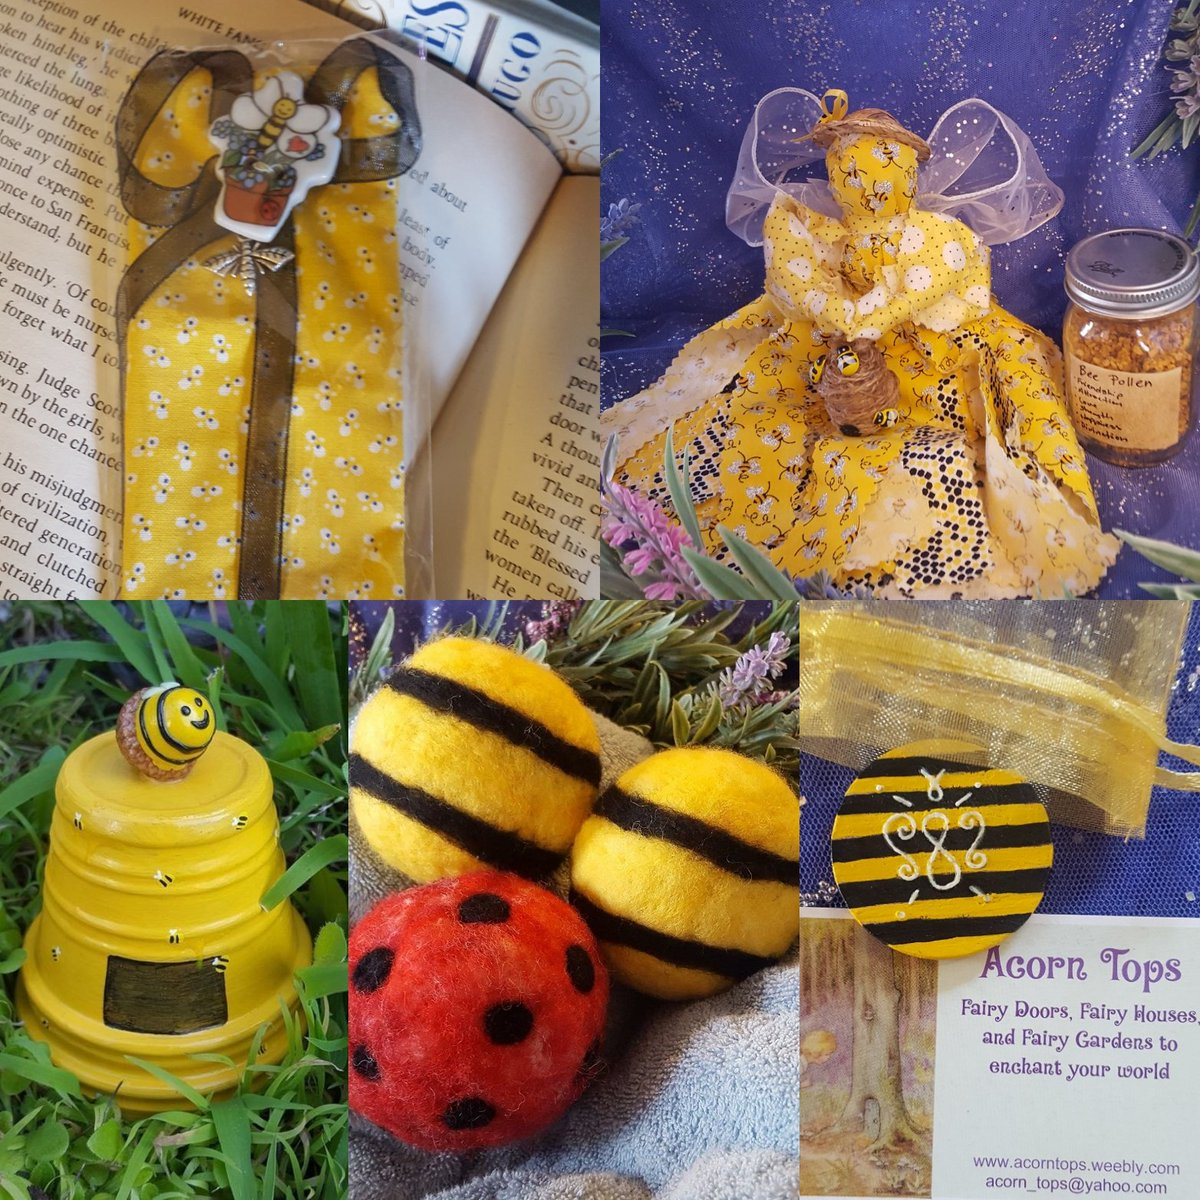 Some of the sweet #bee creations available in my #etsyshop:  https://www.etsy.com/shop/AcornTops  #handmadehour #womeninbizhour #creativebizhour #craftbuzz #bumblebee #SundayFunday #mothersdaygift #EasterGifts #SpringCollection #gardening #aromatherapy #scented #fairies #booklovers #sigilpic.twitter.com/Ix6VGPDsXJ